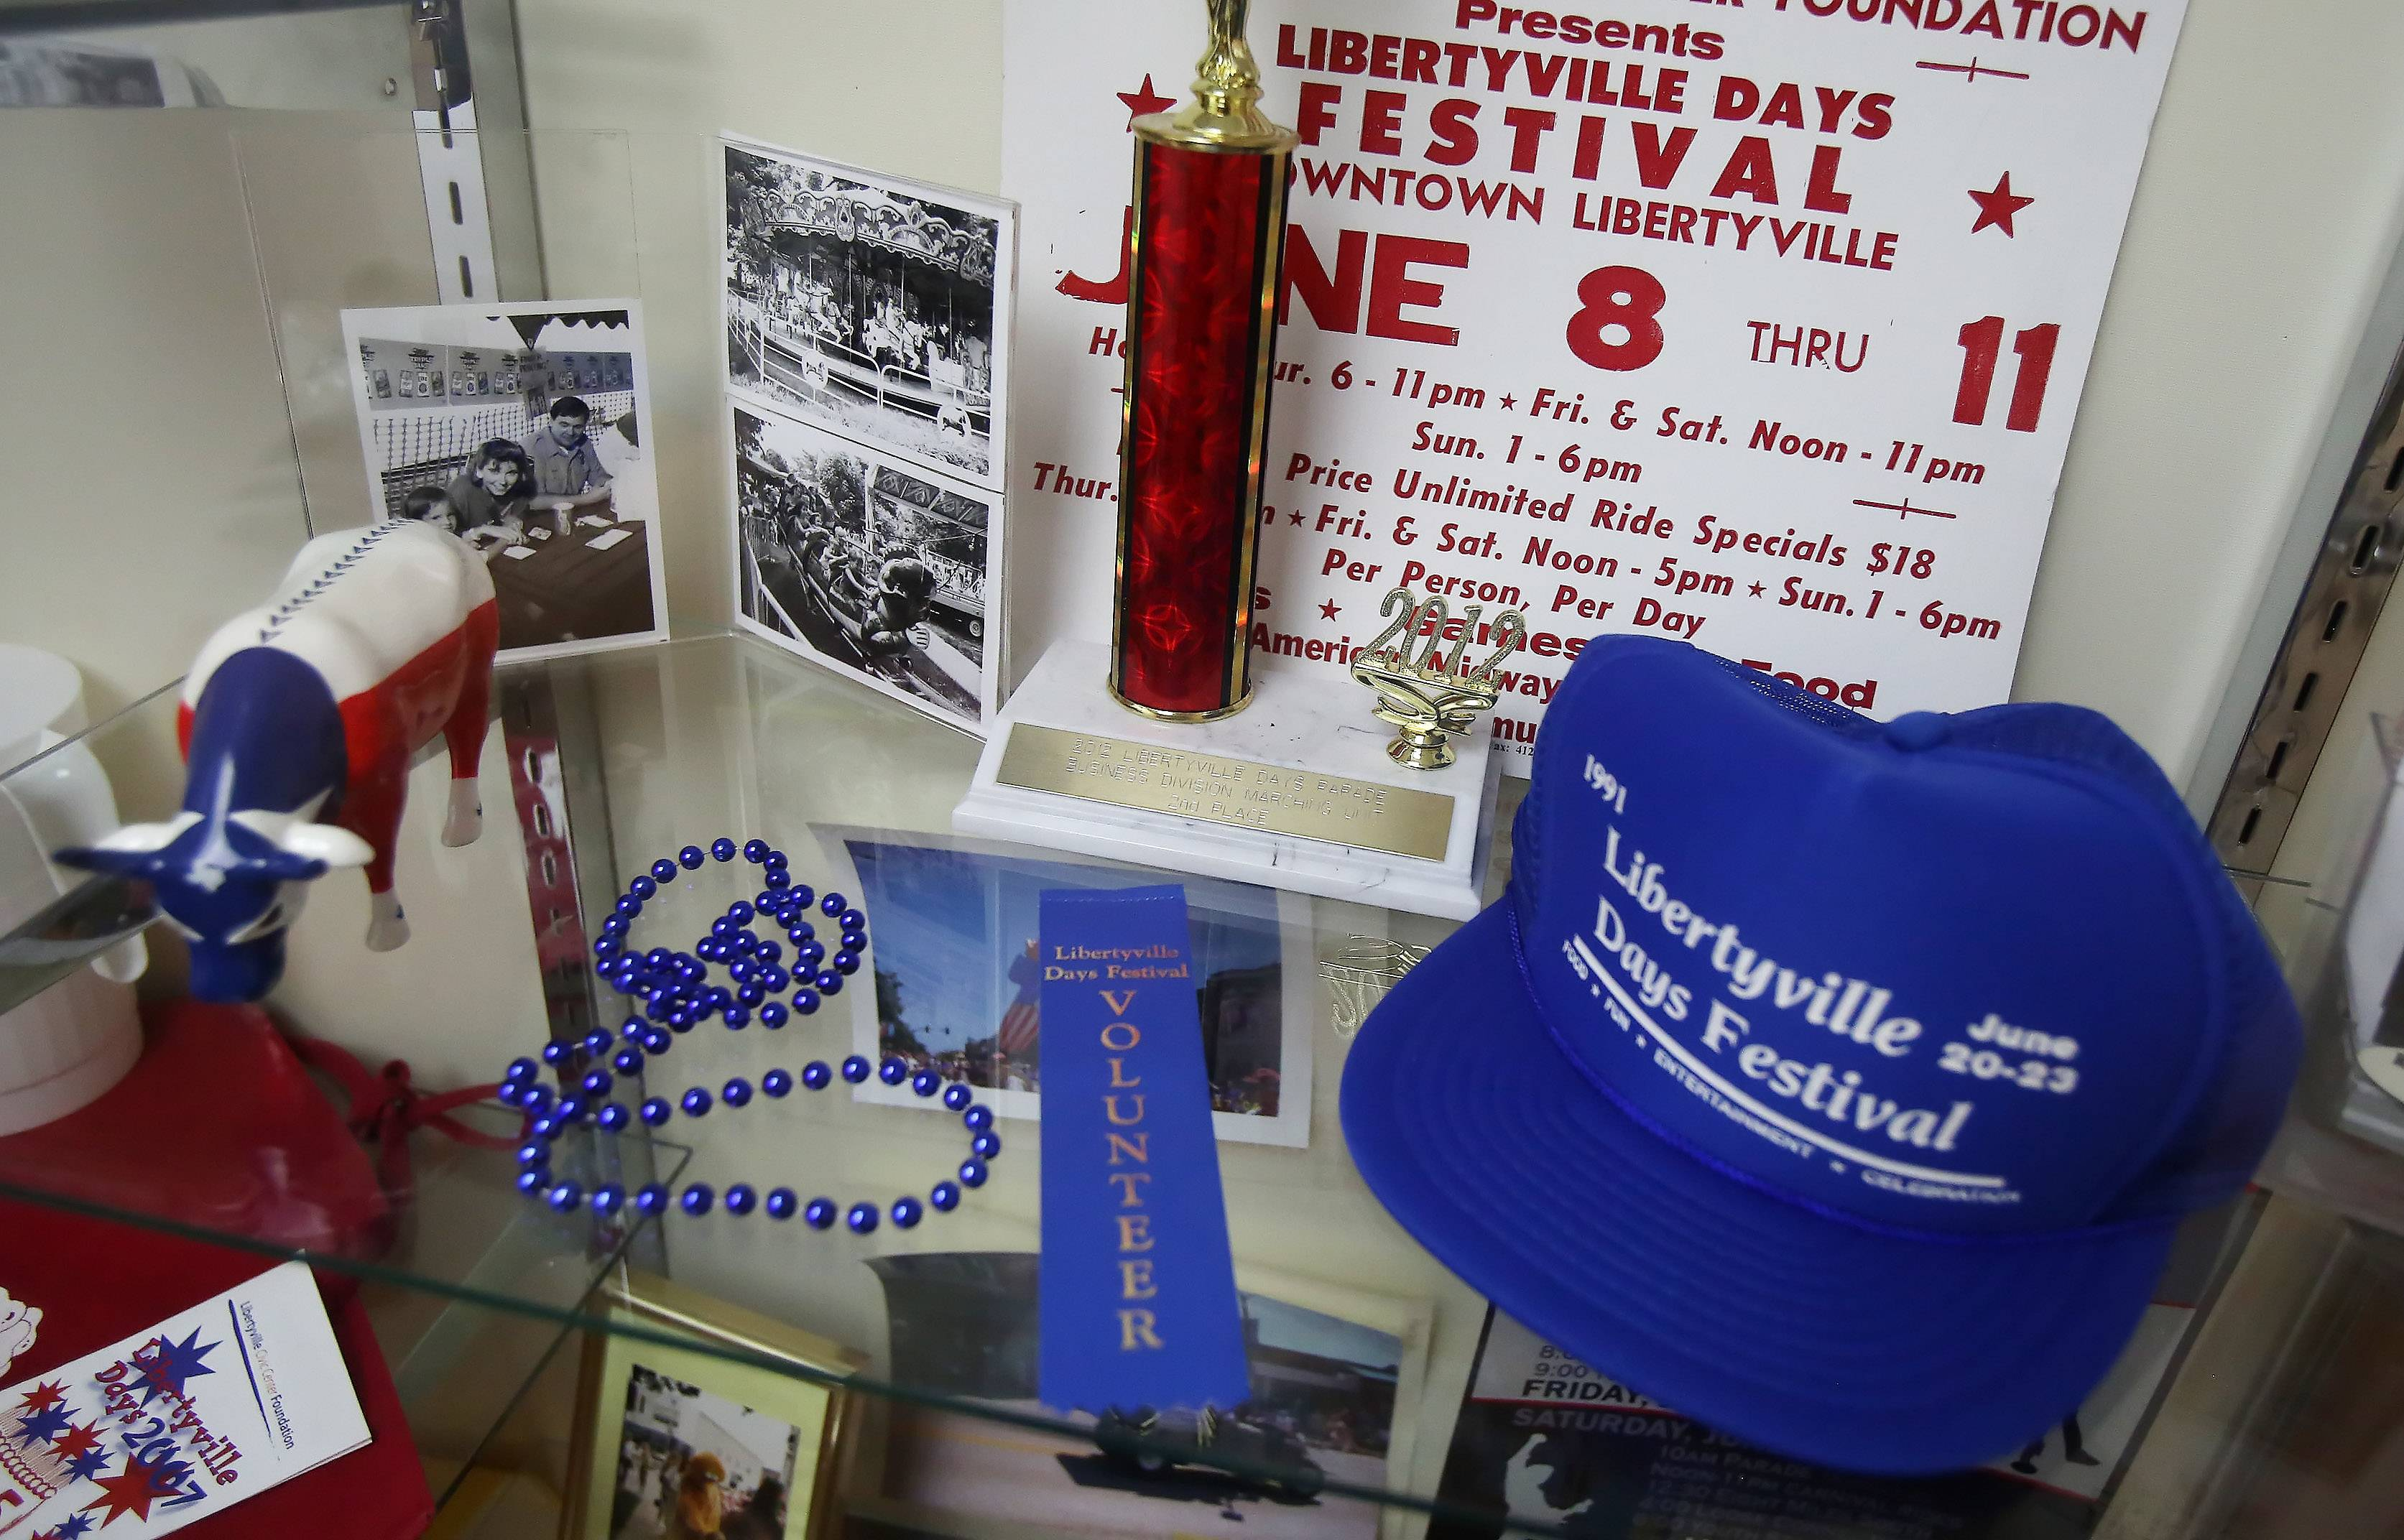 A display of Libertyville Days memorabilia over the years at the Libertyville Civic Center. The center is celebrating its 20th anniversary.